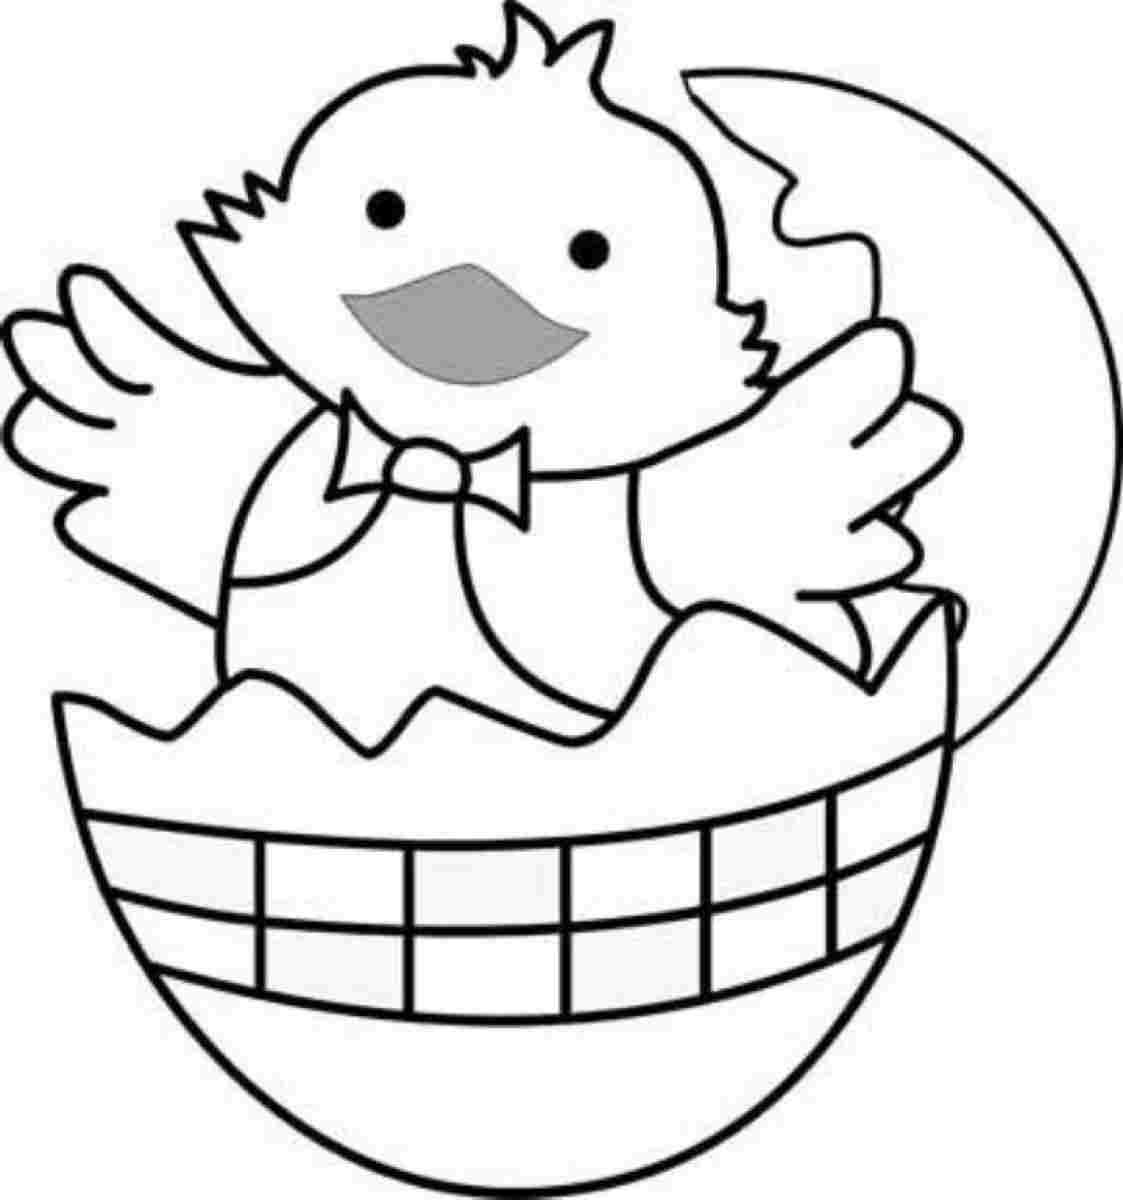 Image result for easter chick colouring pages | Easter | Pinterest ...